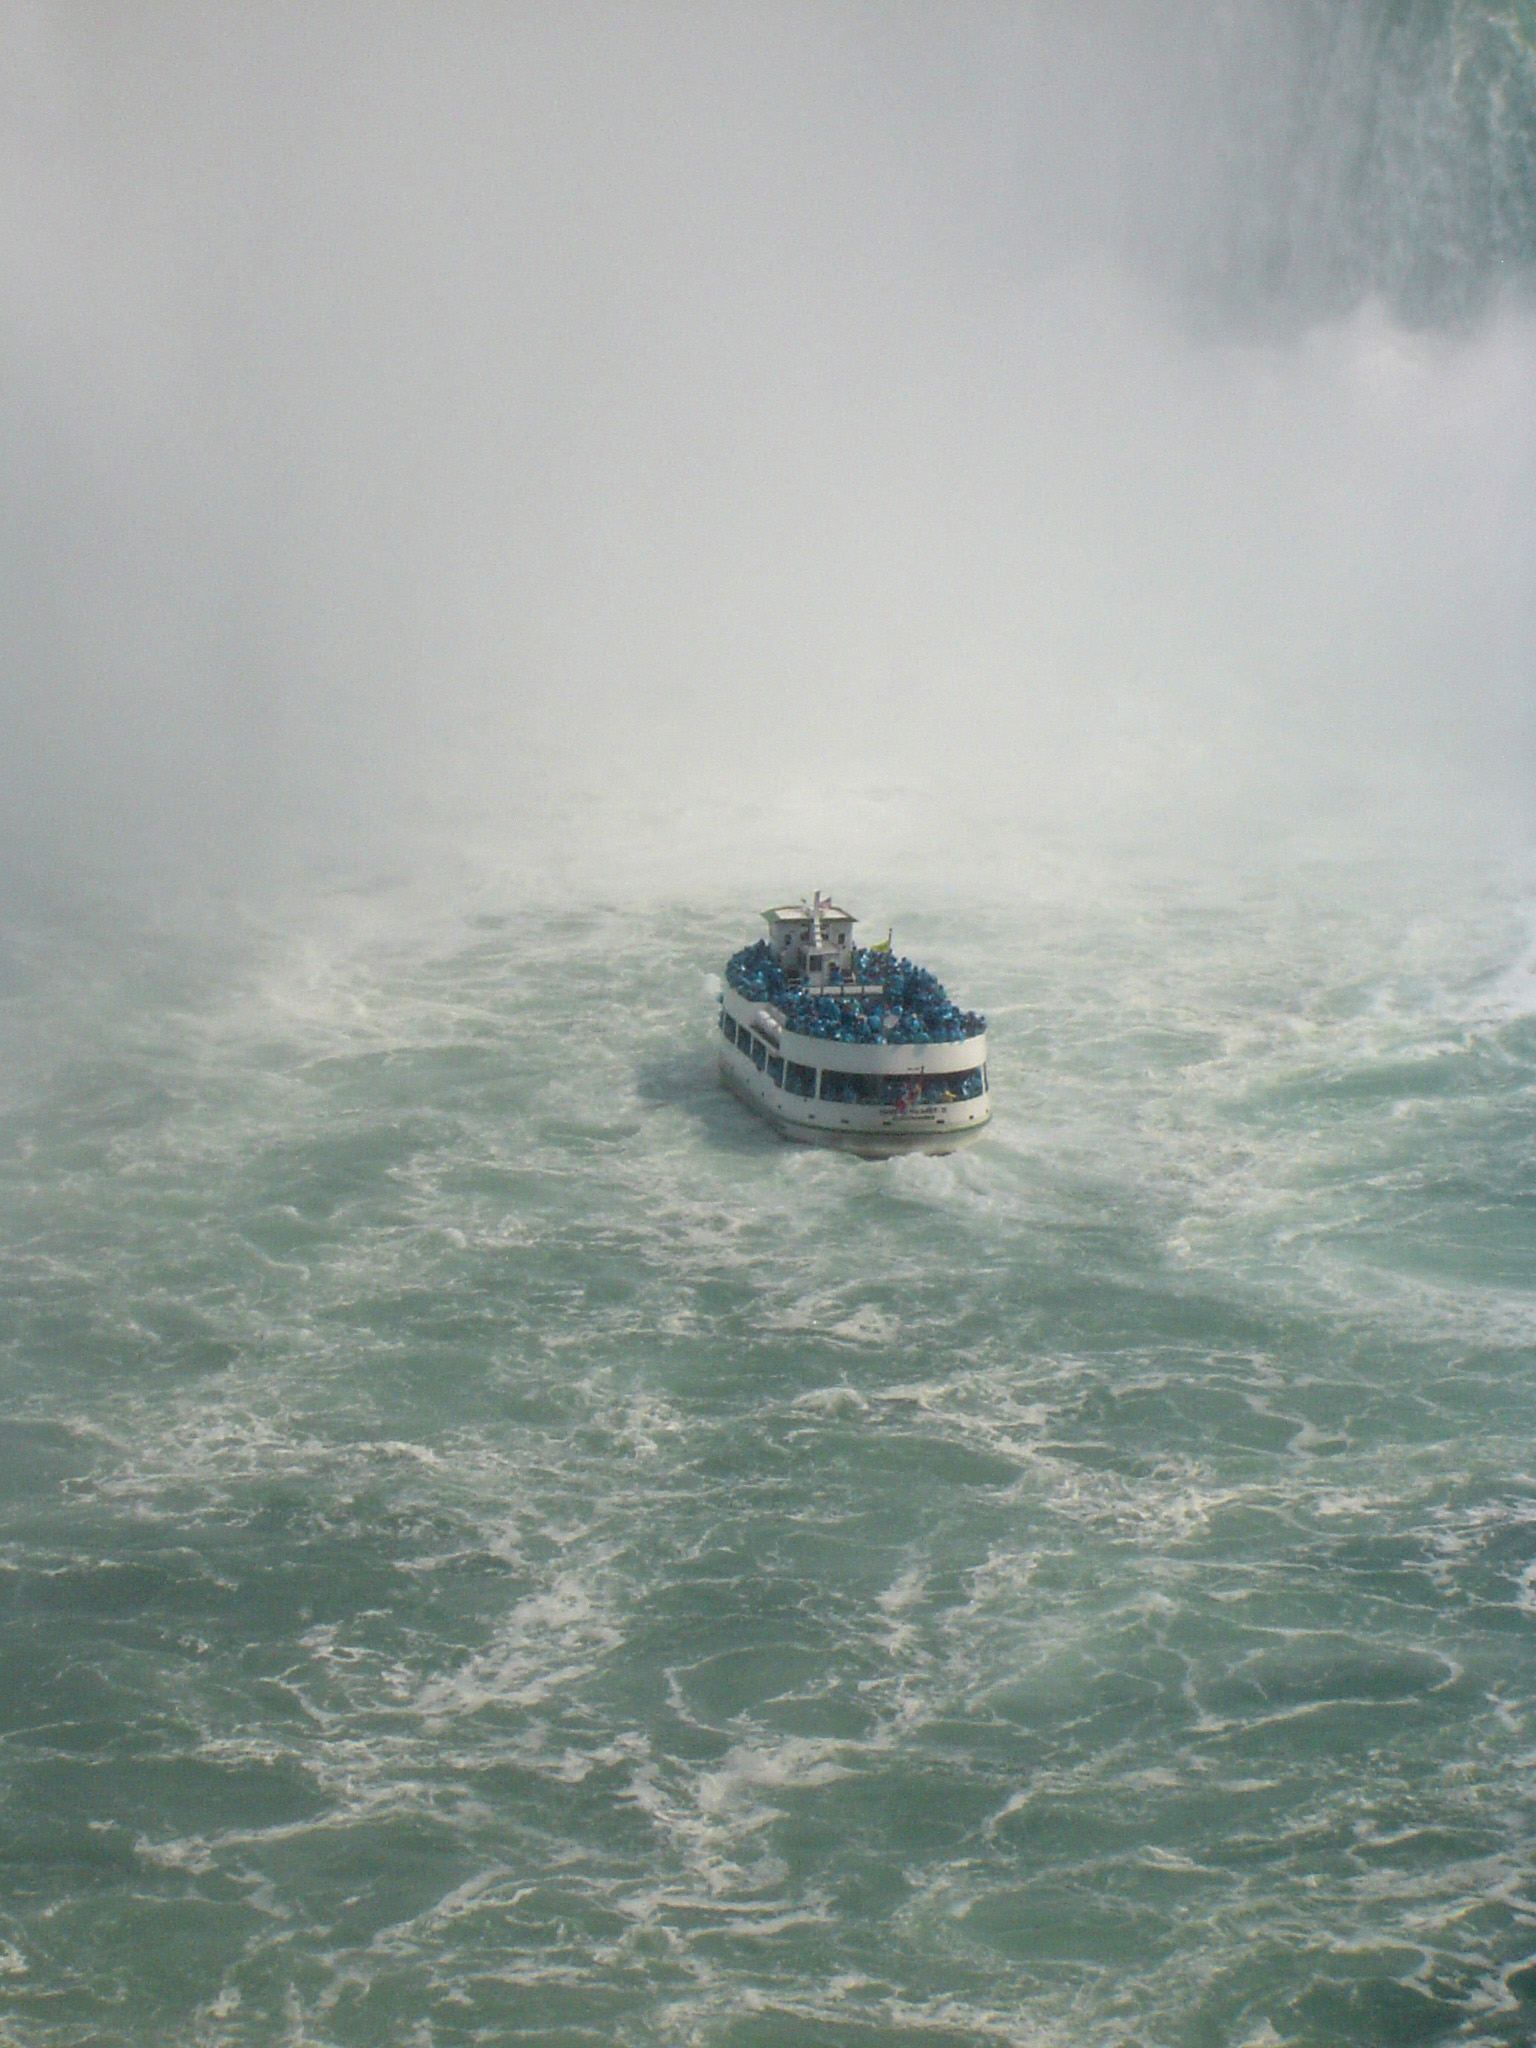 Maid of the Mist Tour Boat at Niagara Falls, Ontario, Canada